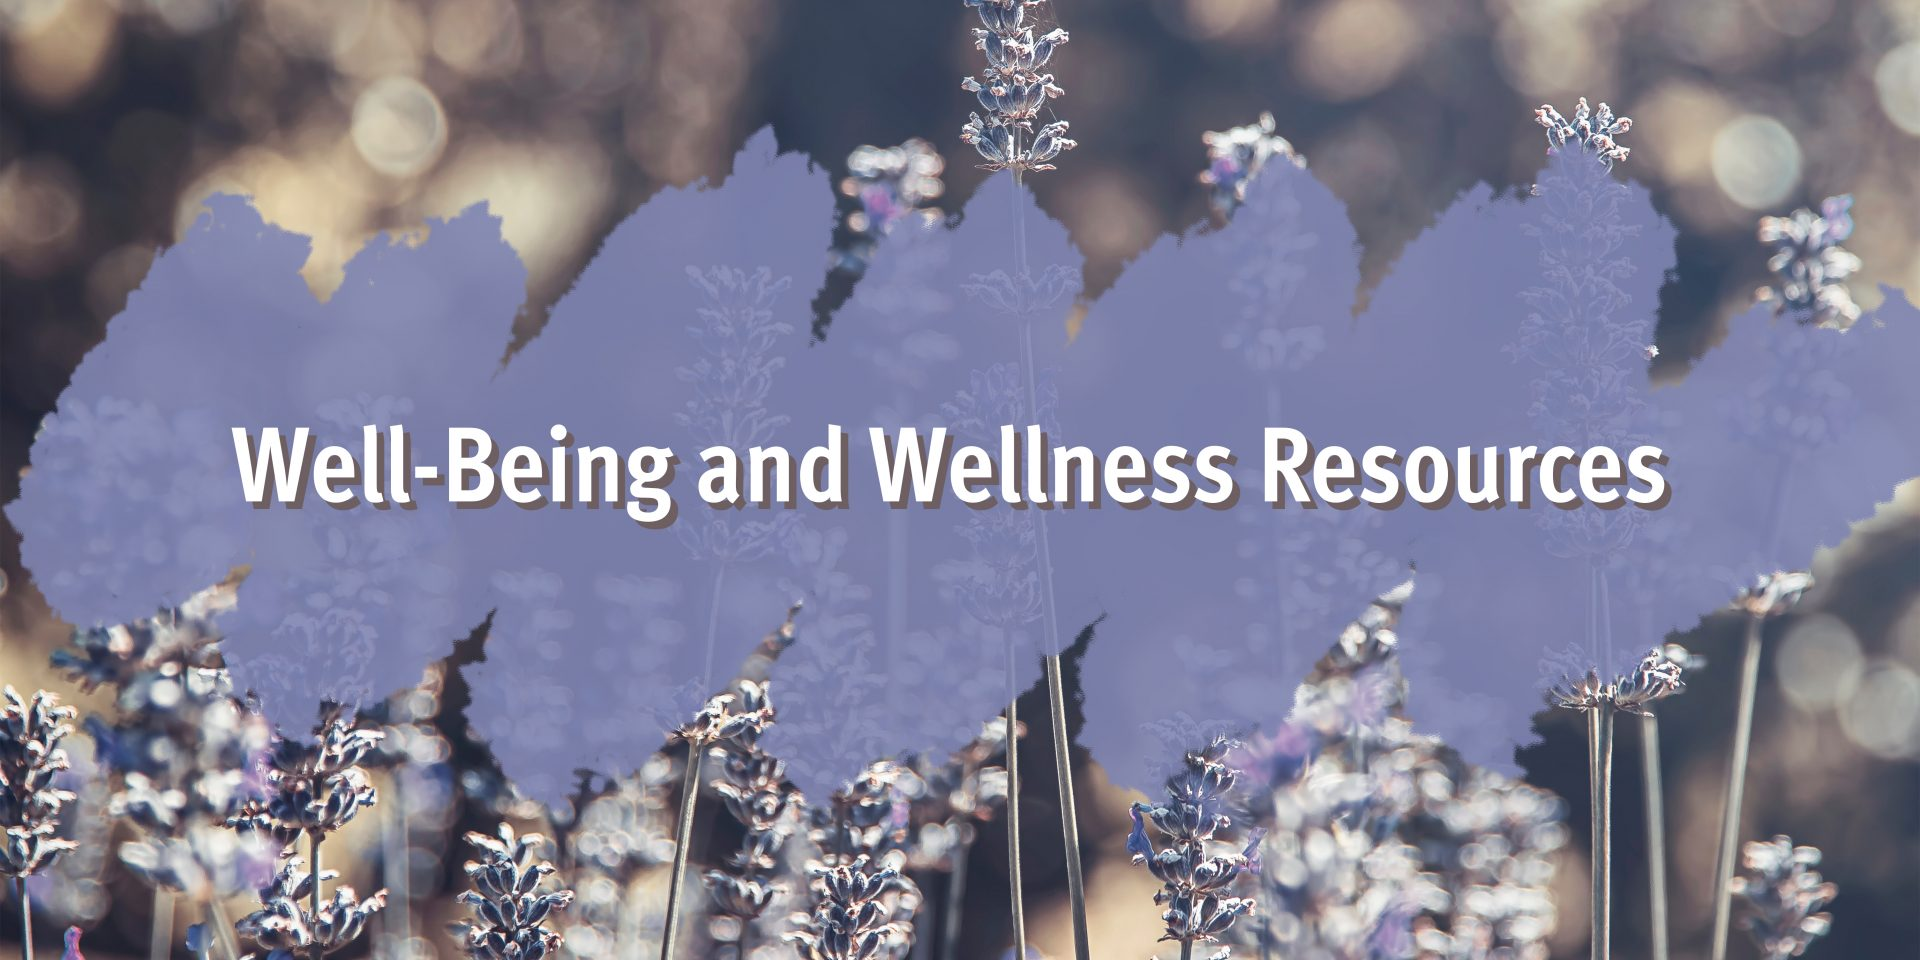 Well-Being and Wellness Resources